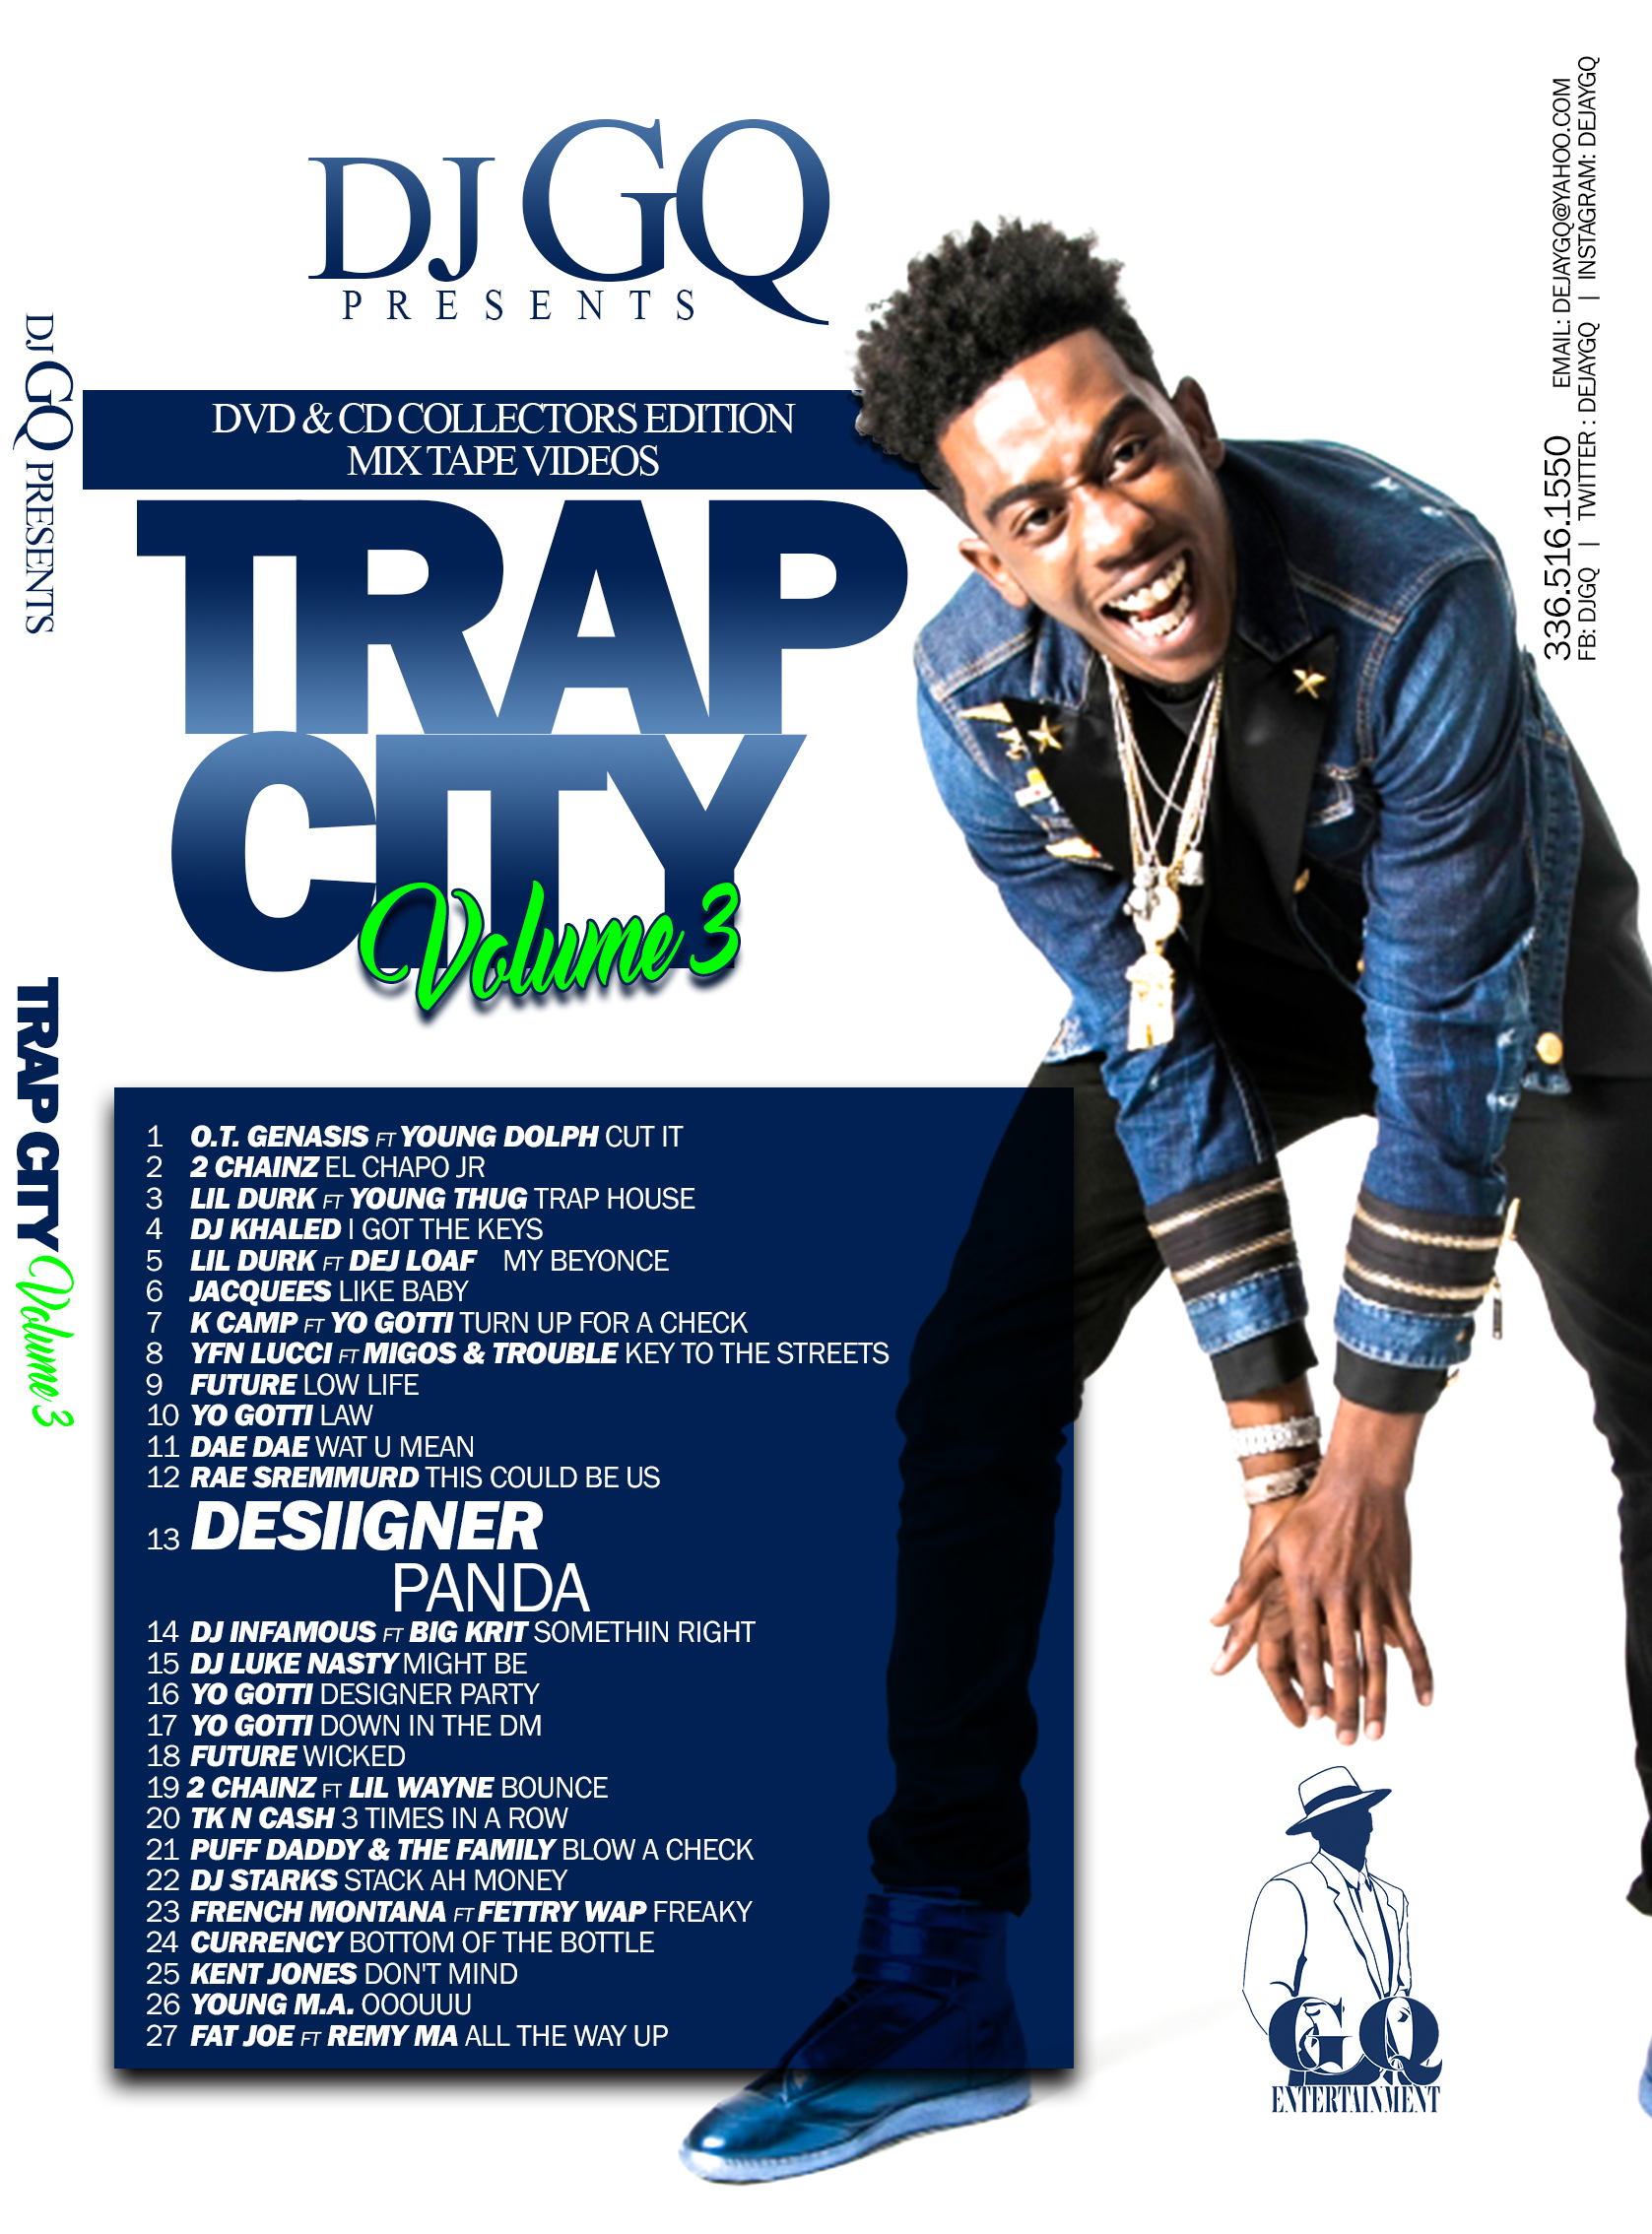 TRAP CITY VOLUME 3 DVD